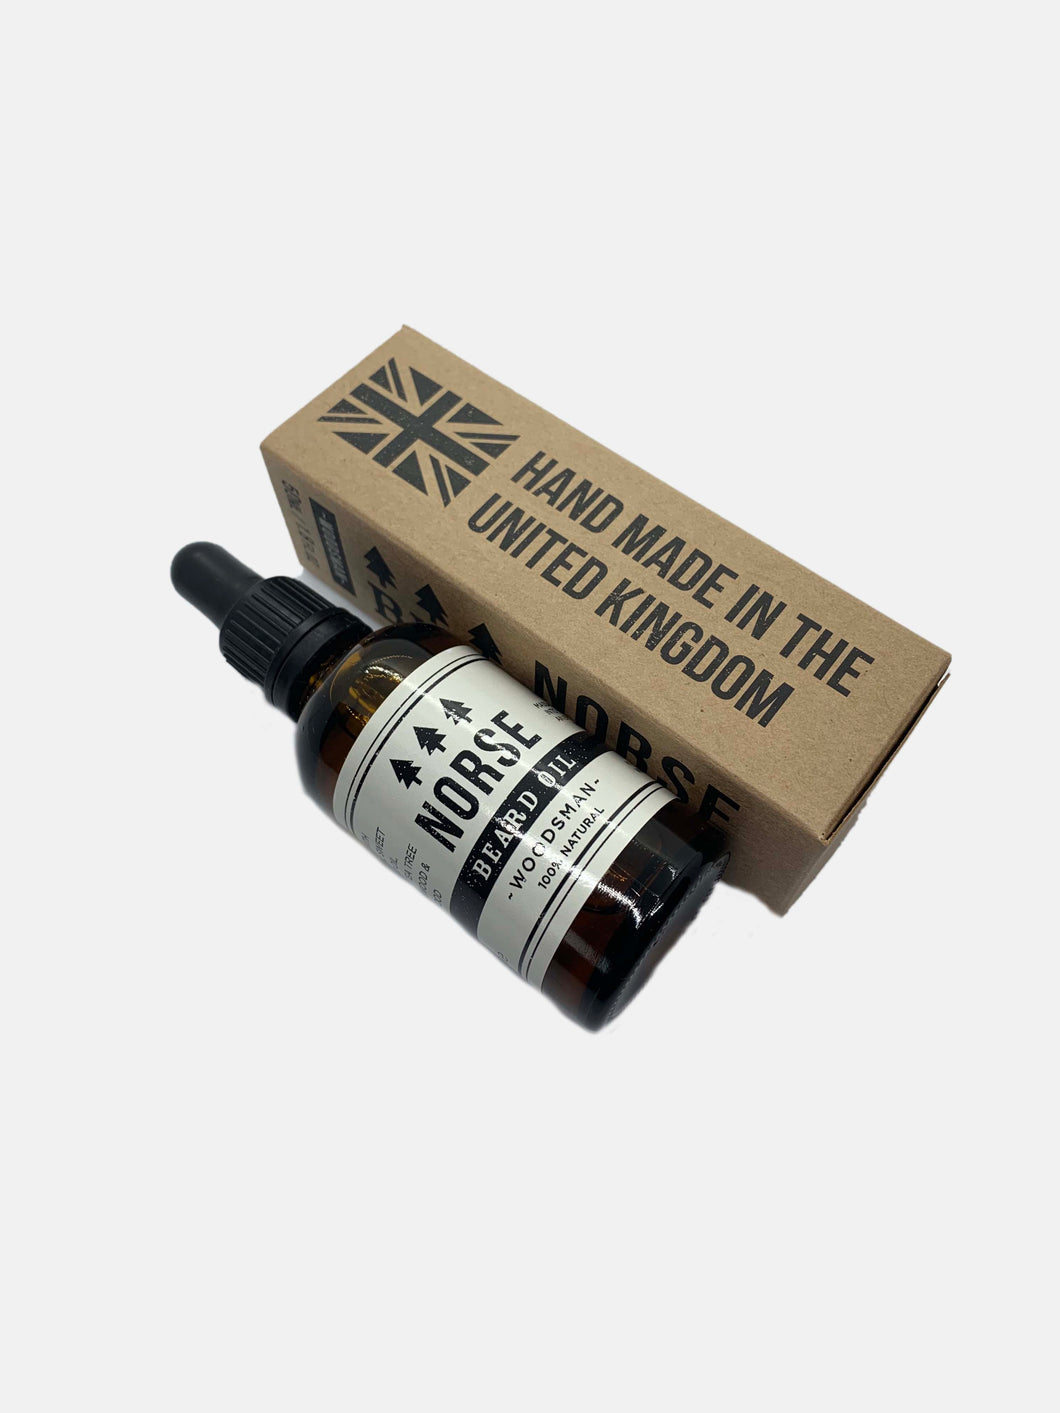 Norse premium beard oil Woodsman handmade in uk vegan freindly